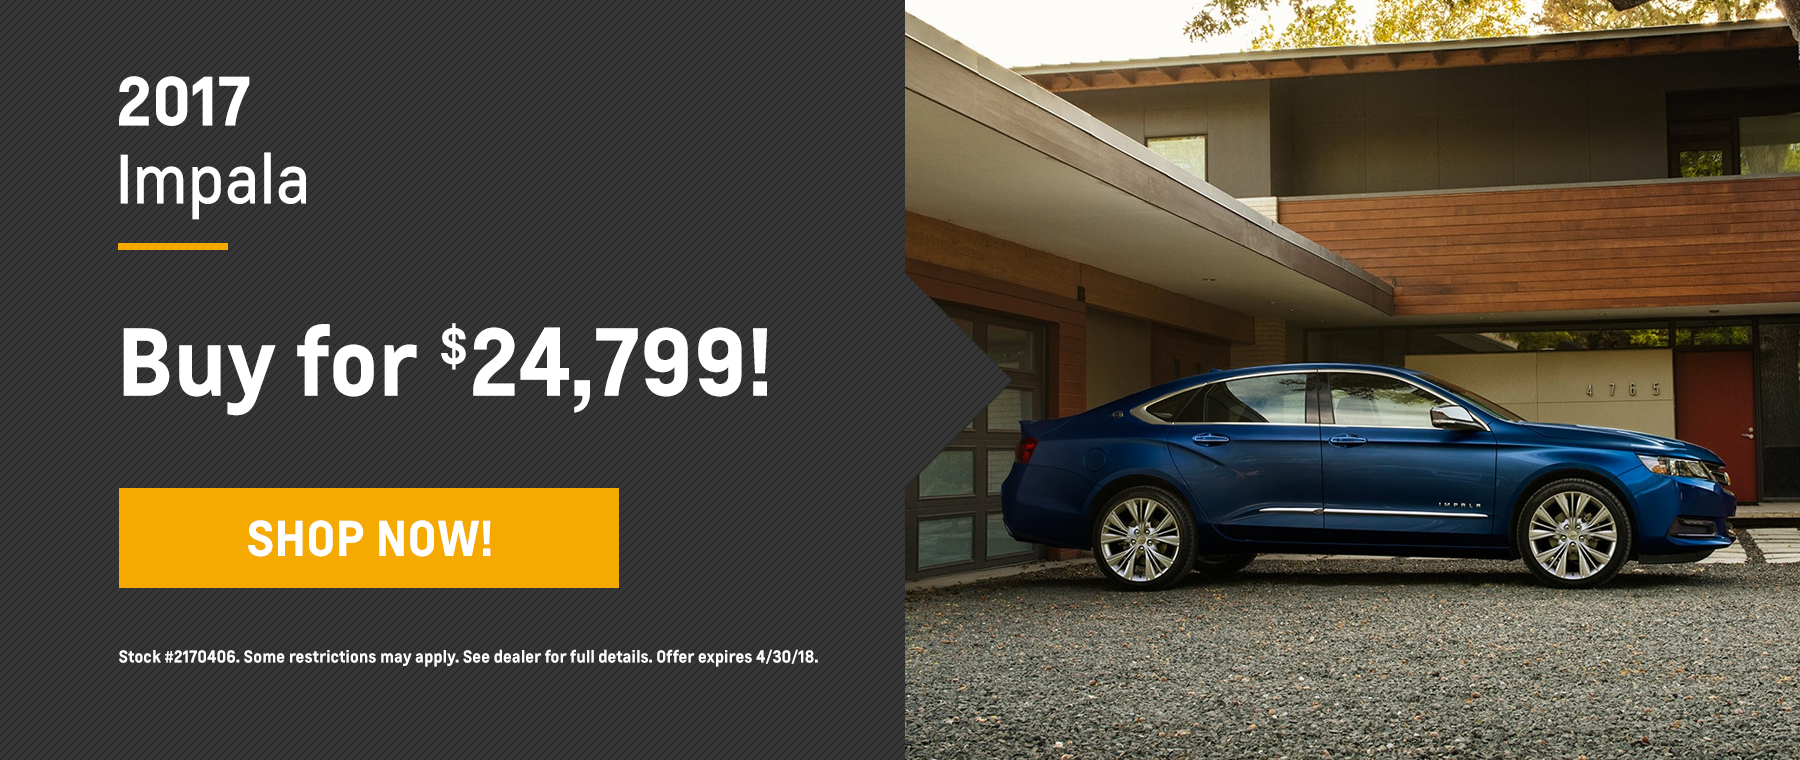 Impala Biggers Chevrolet April Offer Homepage